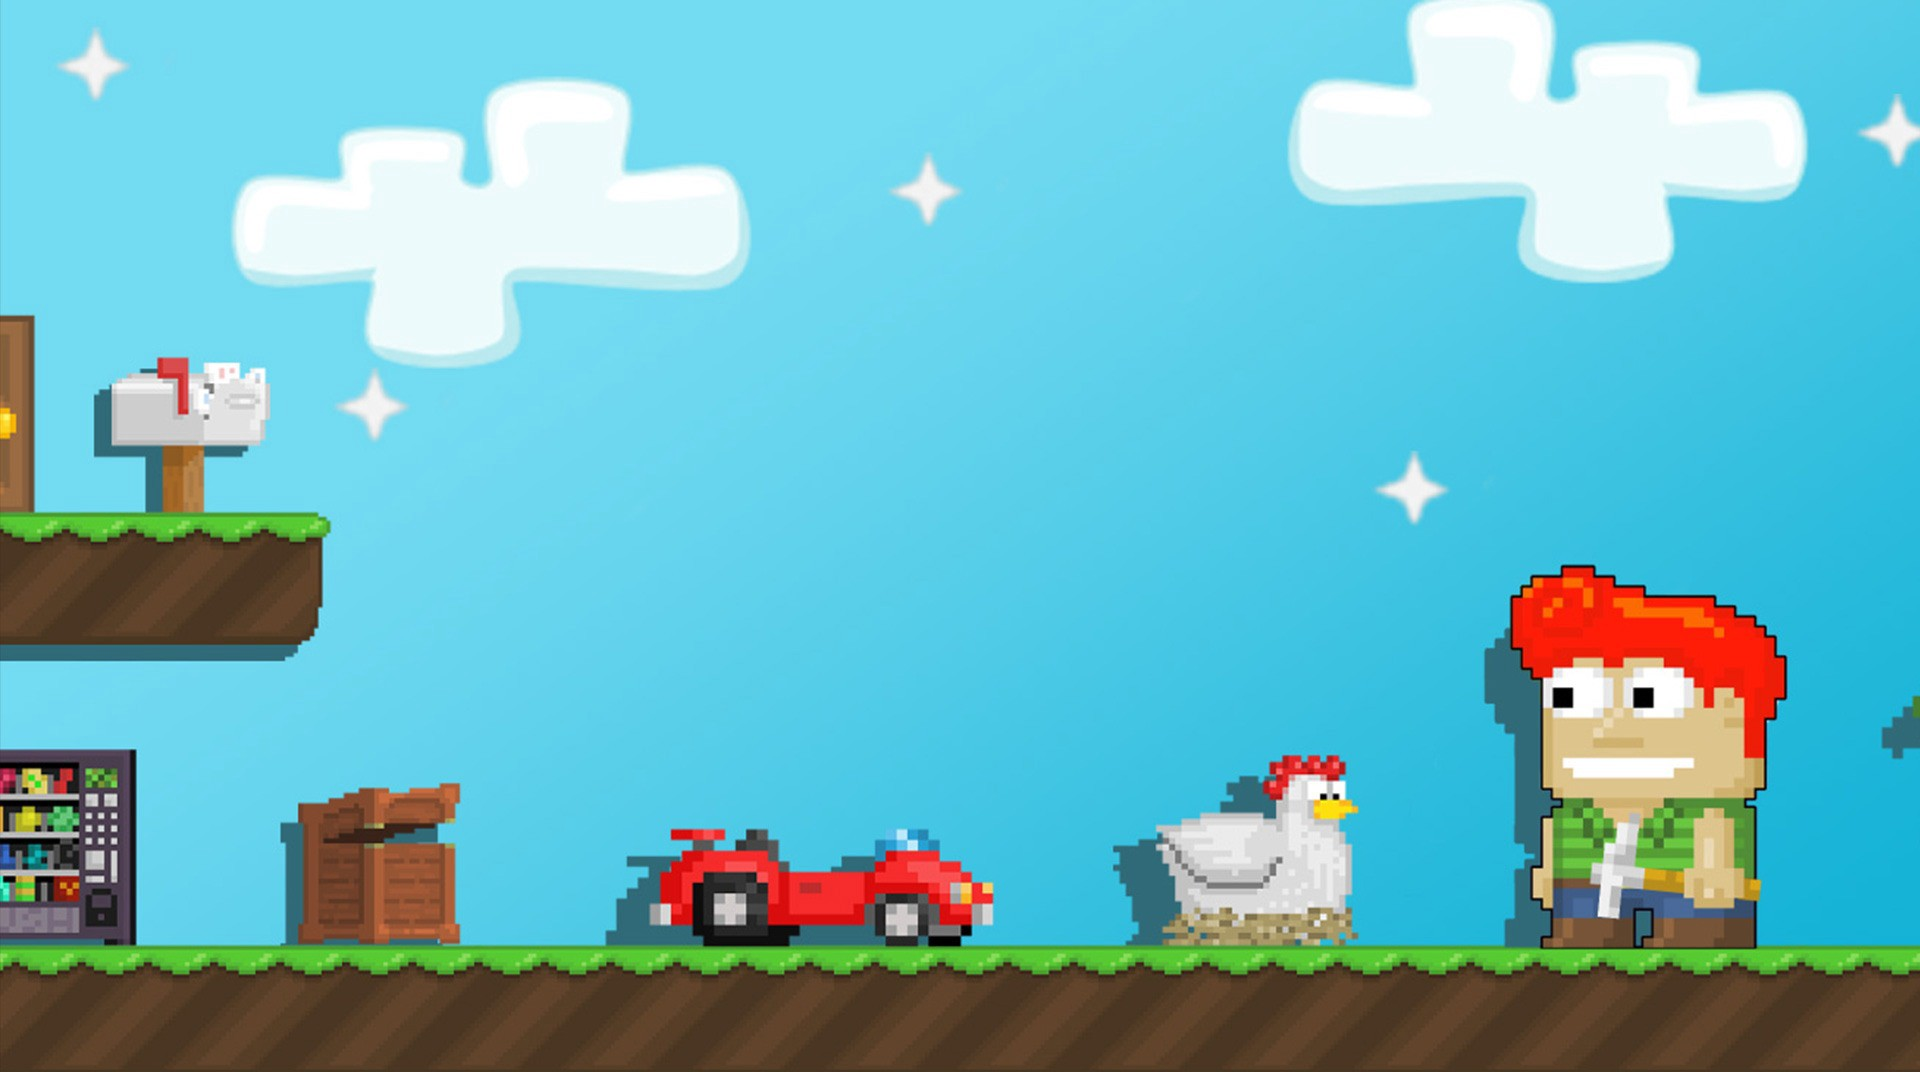 Resep Growtopia Lengkap Resep Growtopia Lengkap Growtopia By